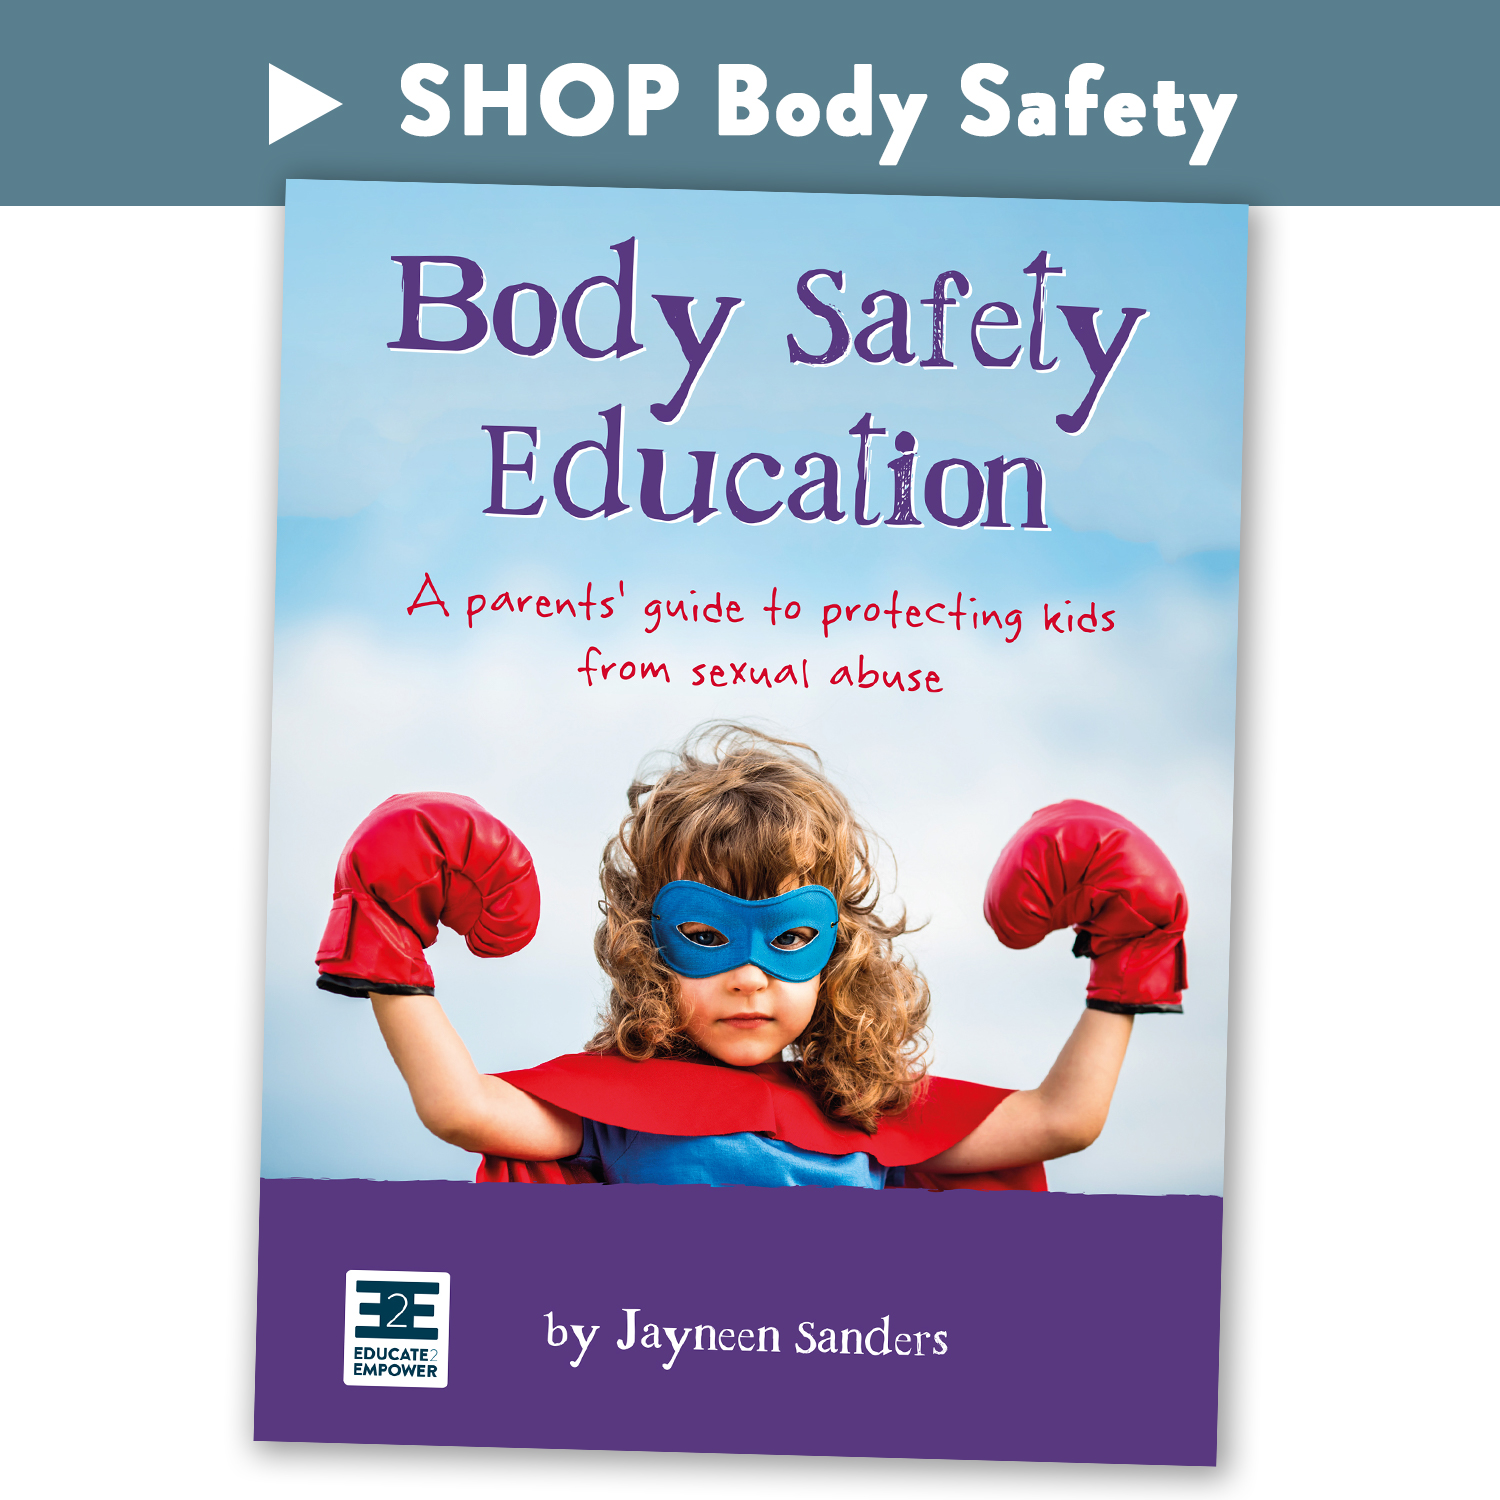 E2E_shop_BodySafety_7-BSE.jpg